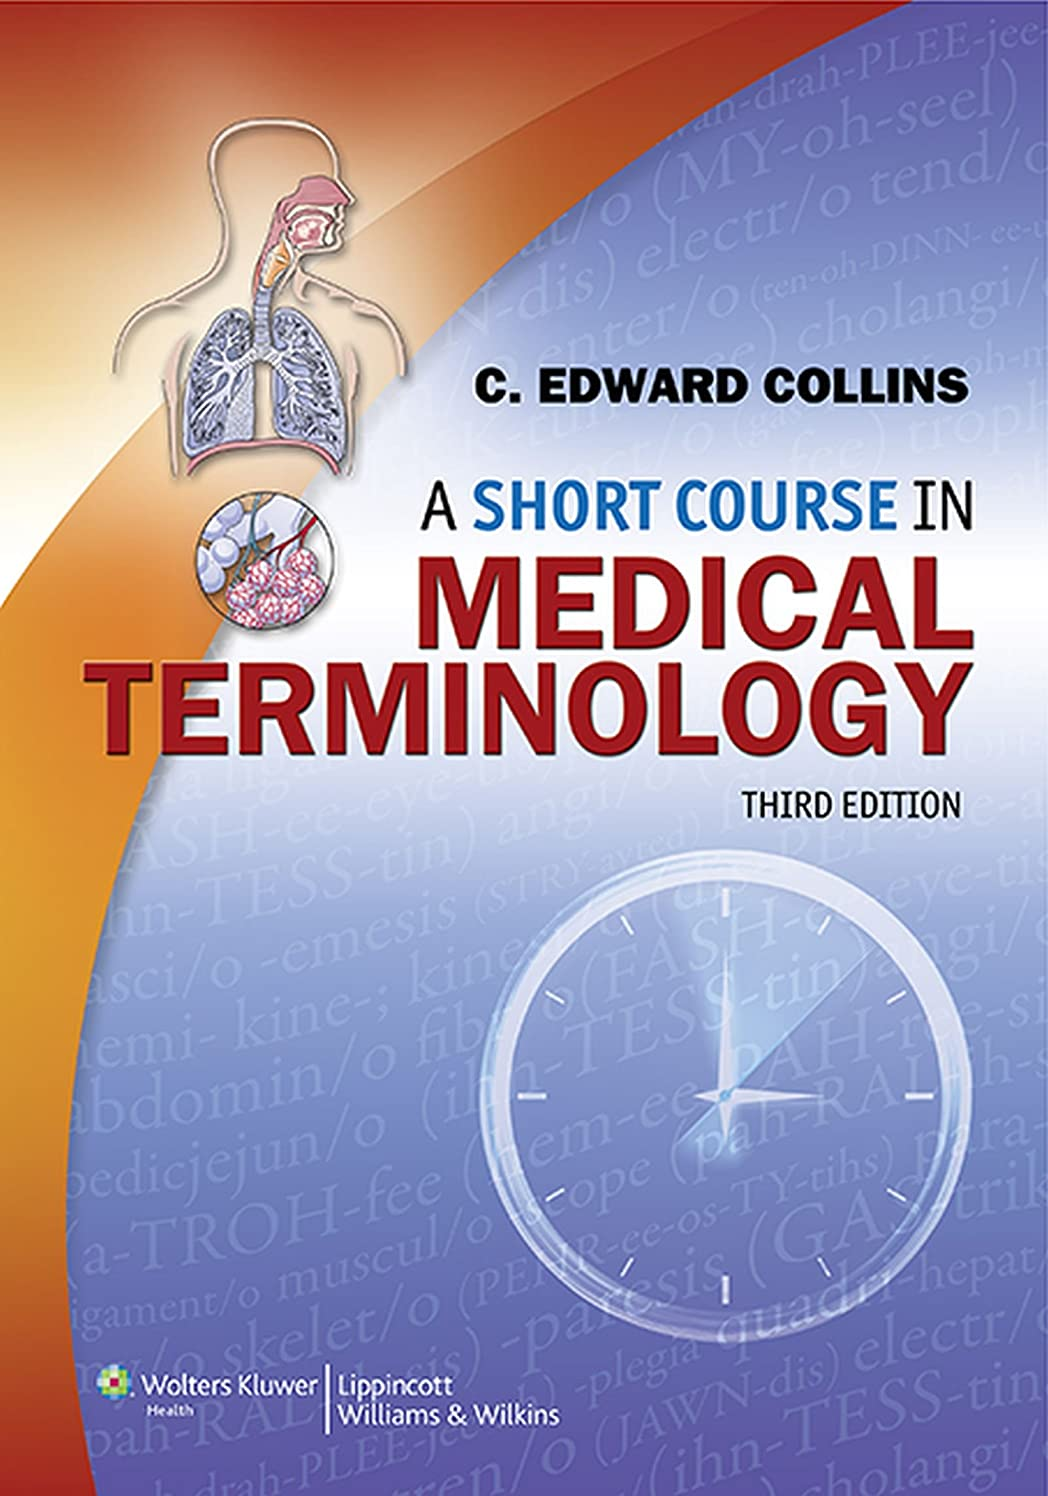 トーク田舎批判的にA Short Course in Medical Terminology (English Edition)